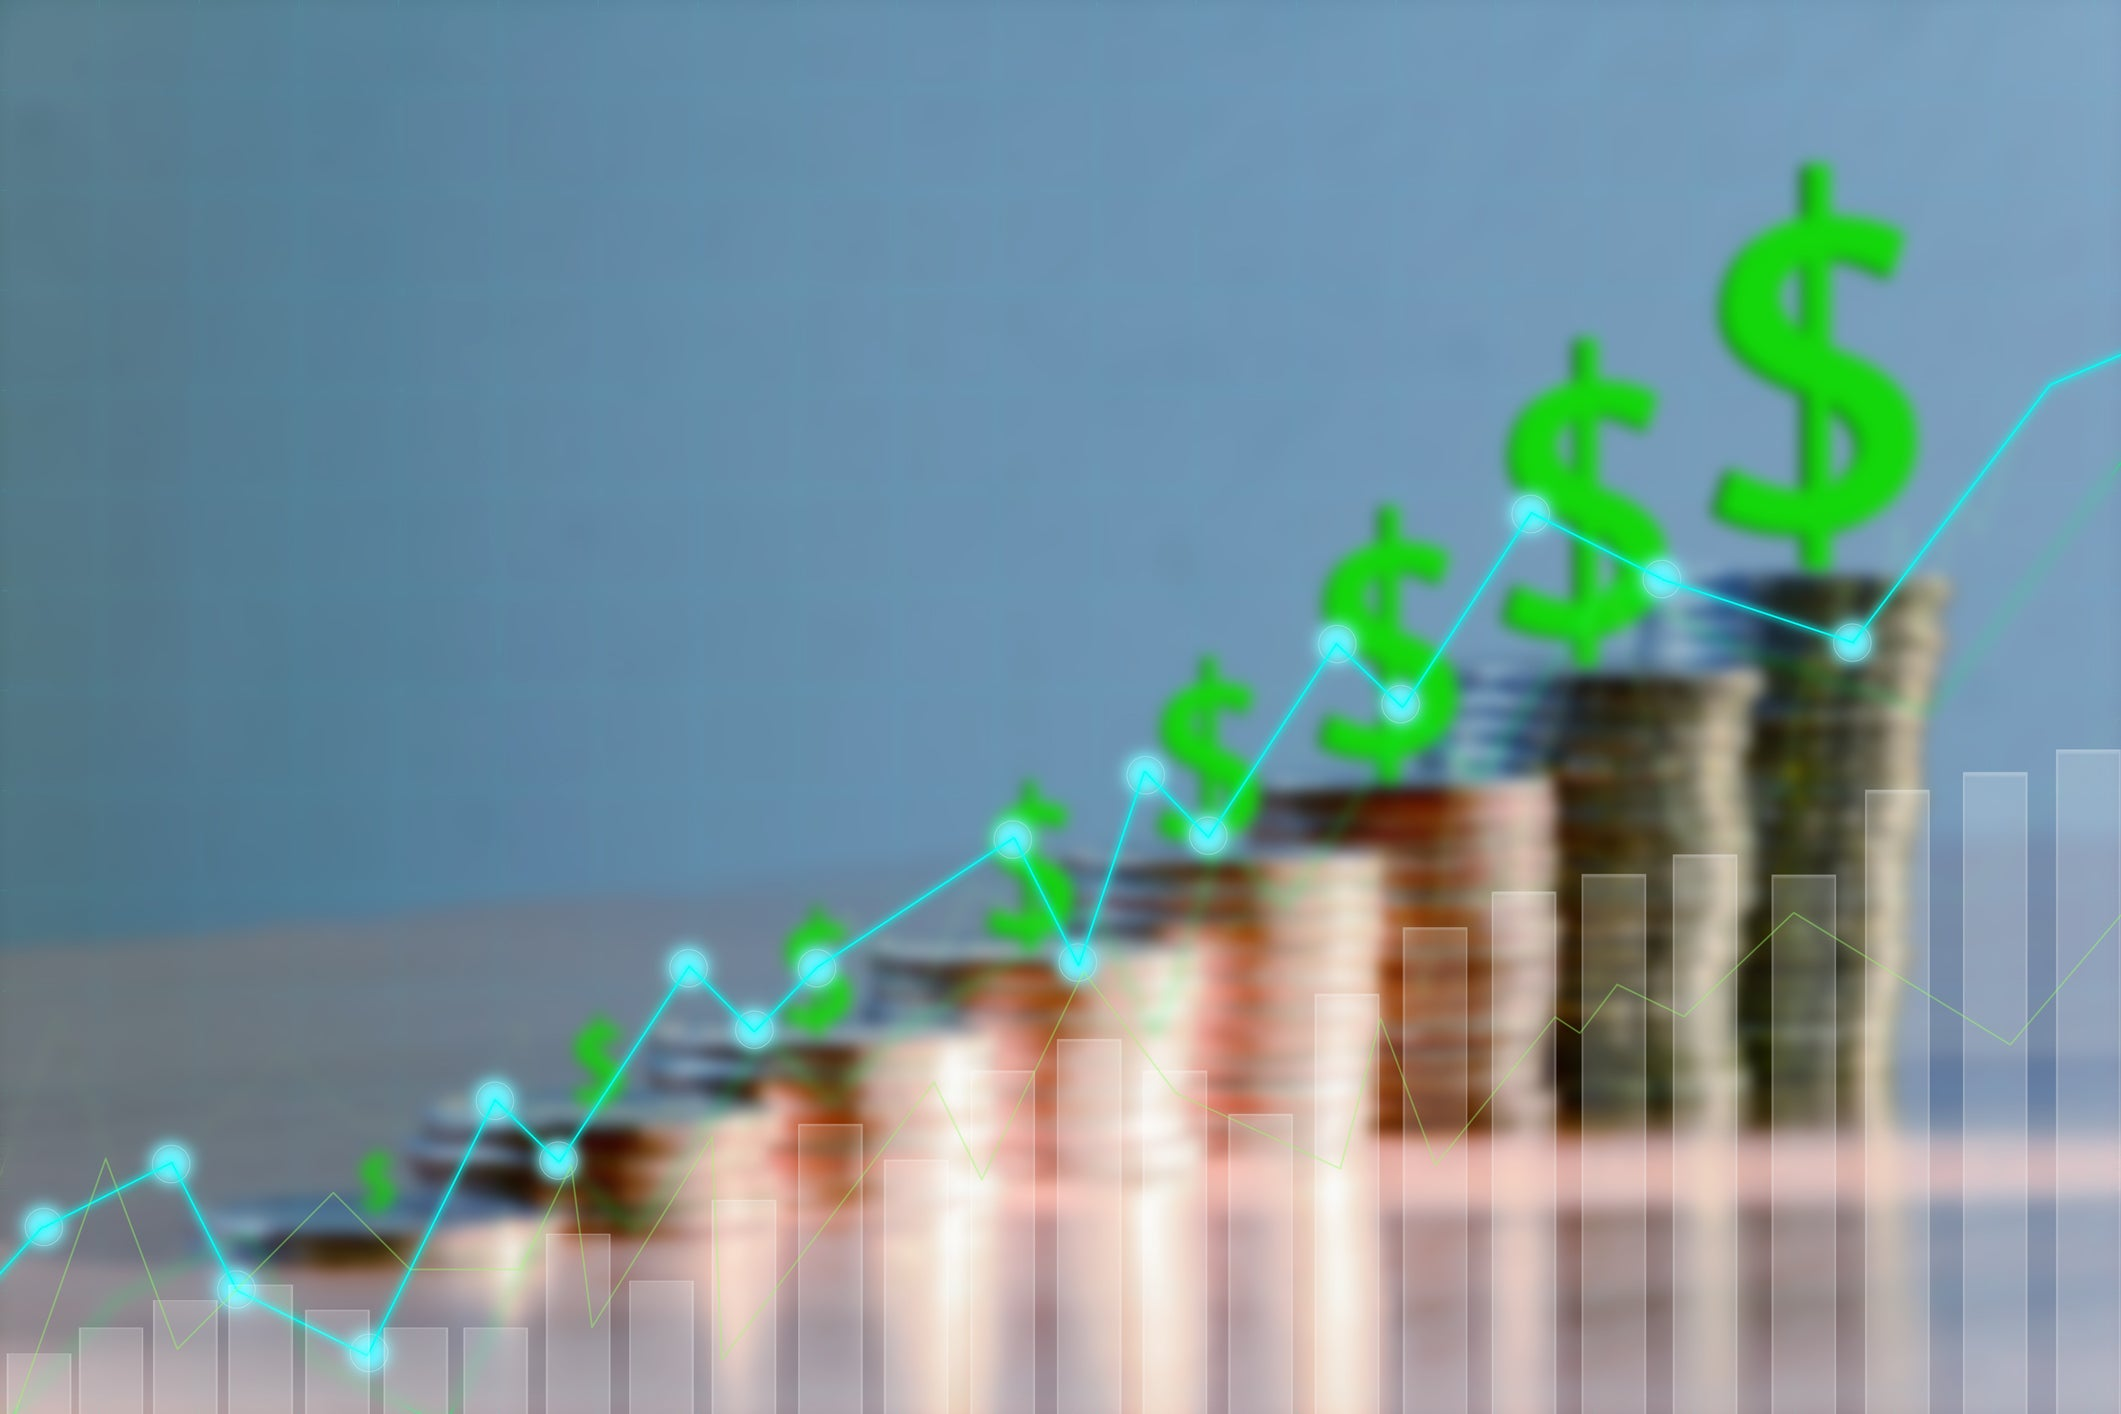 This High-Yield Dividend Stock Continues to Generate High-Octane Growth | The Motley Fool